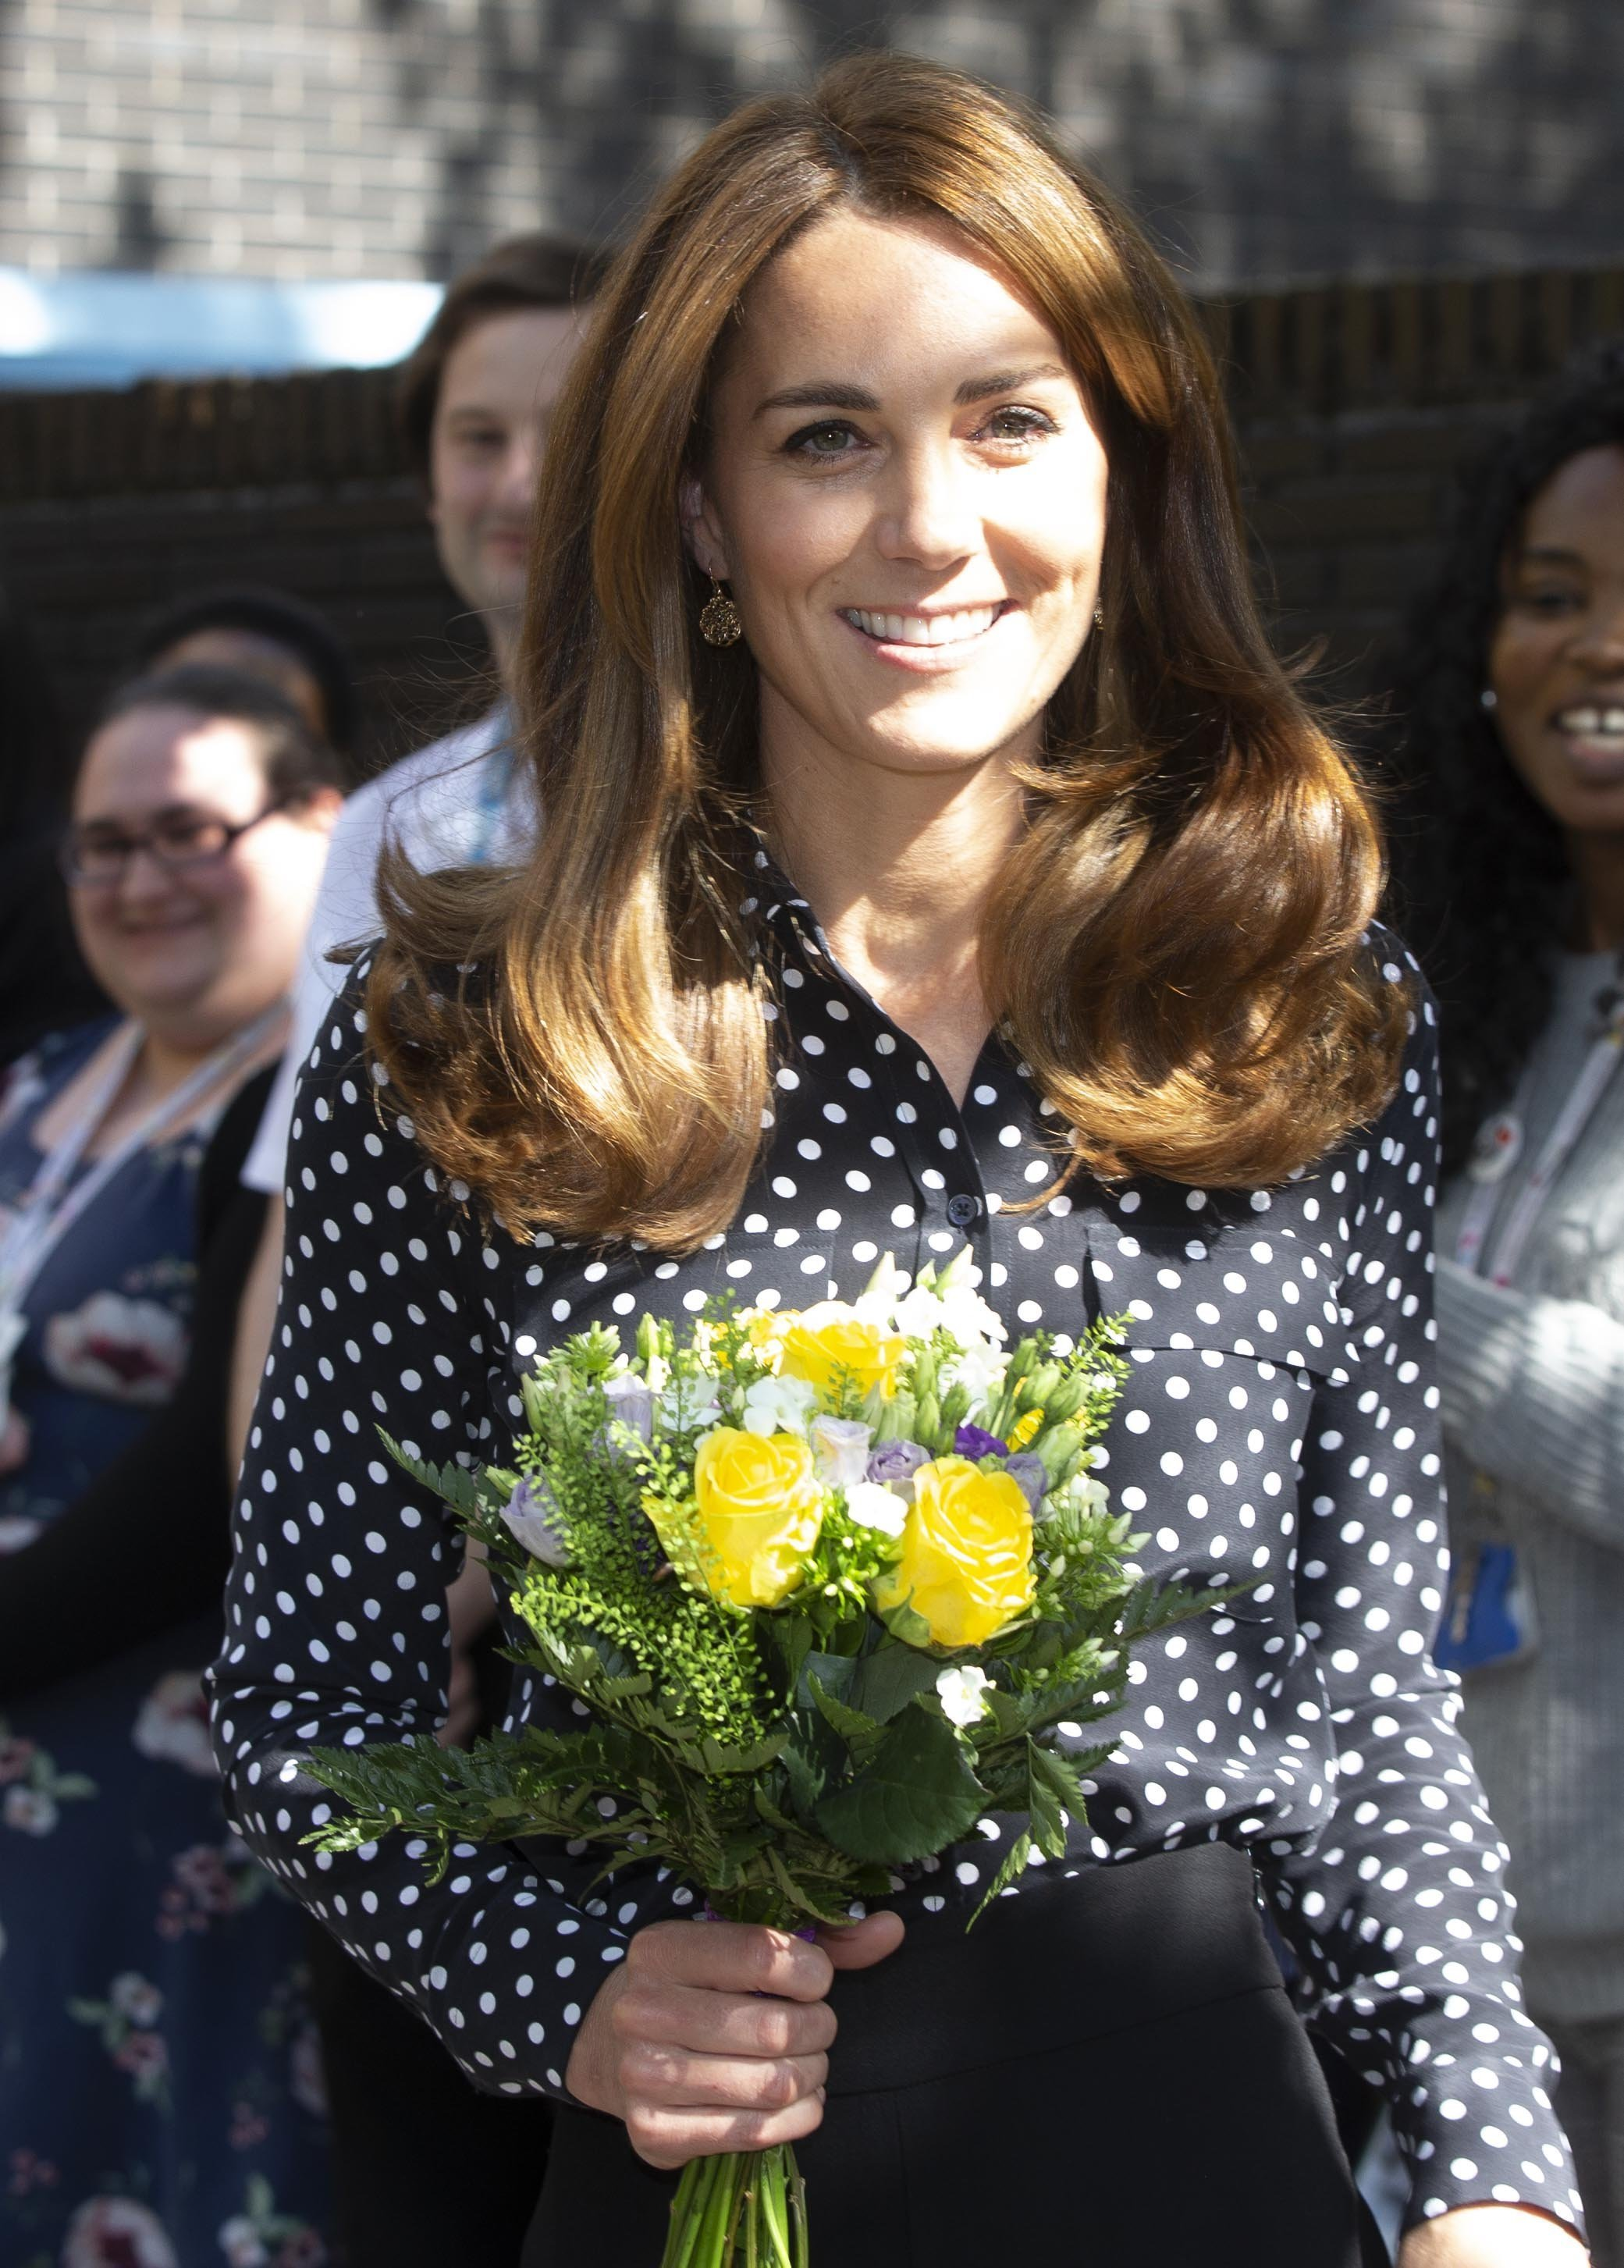 Duchess Kate visits Sunshine House Children and Young People's Health and Development Centre on September 19, 2019 in London, England | Photo: Getty Images